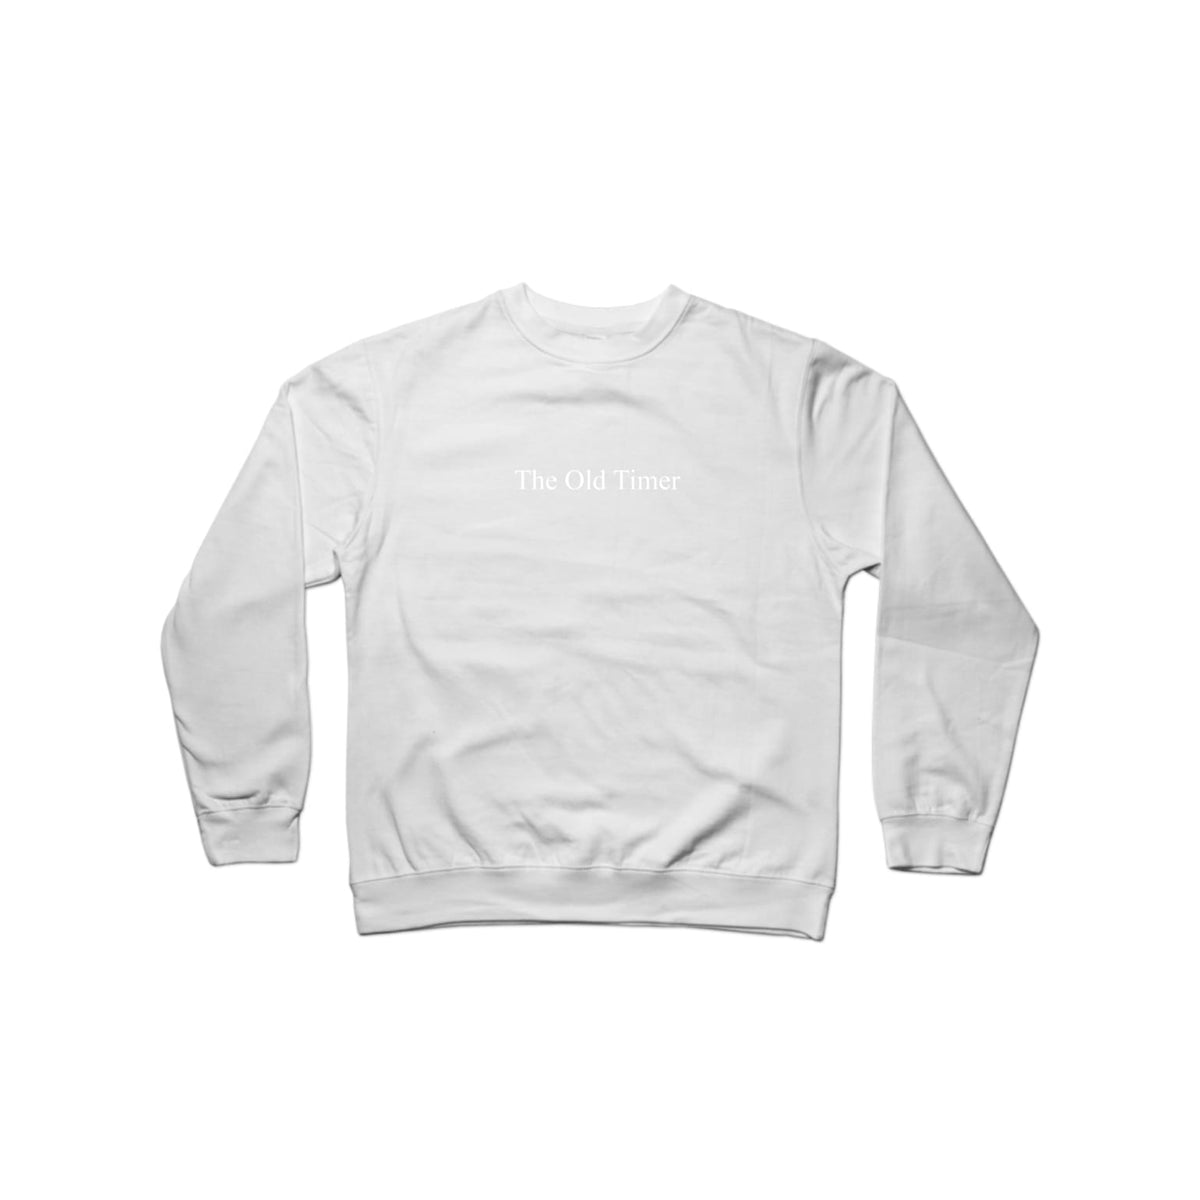 The Old Timer Character Crewneck Black